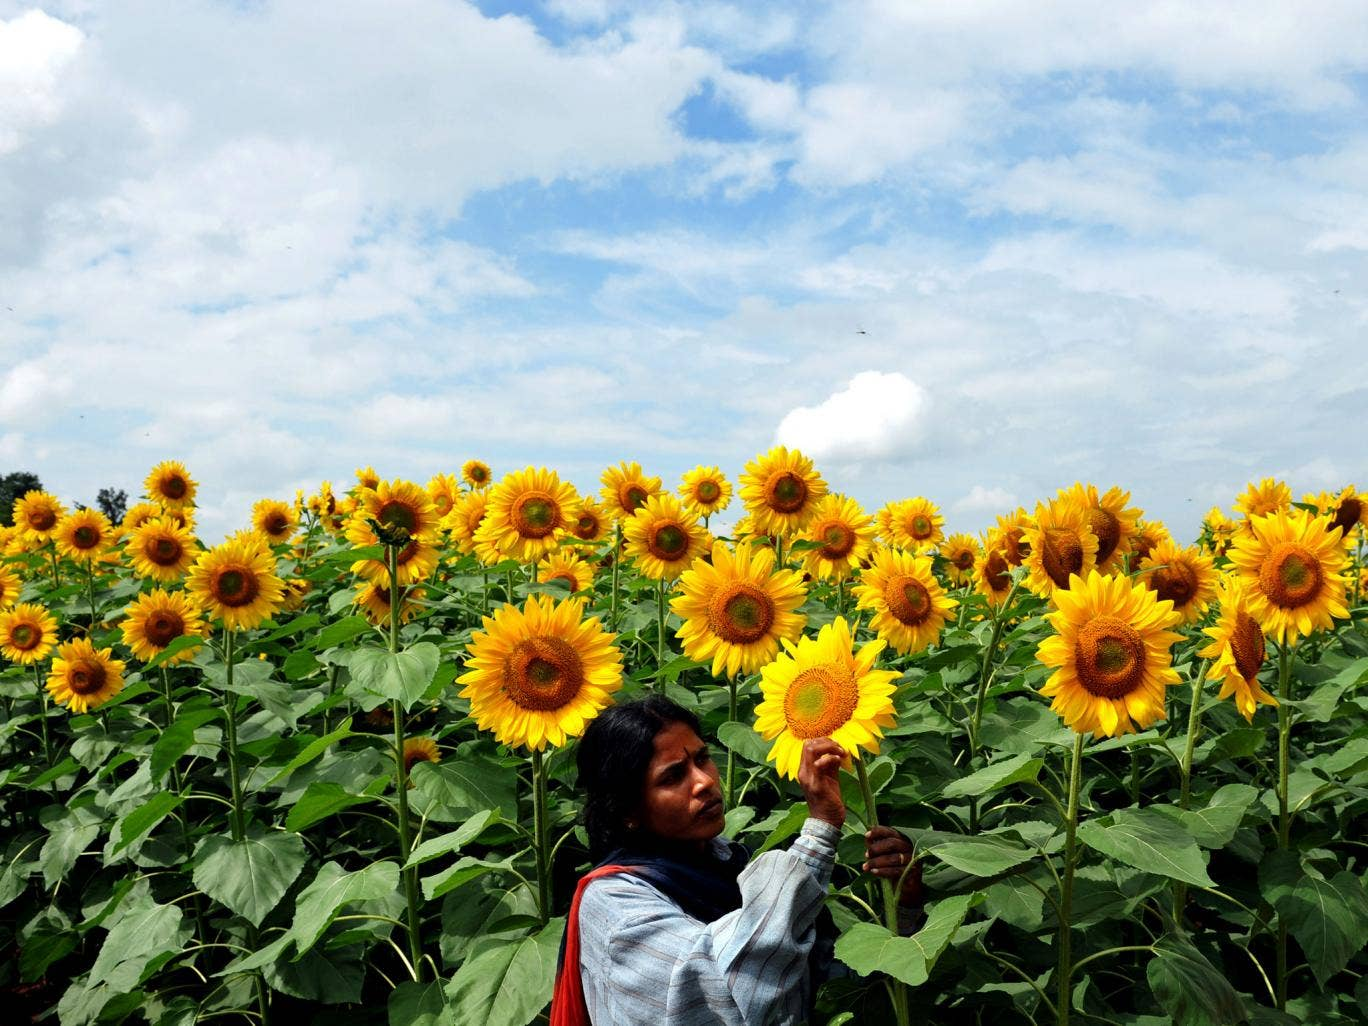 A farmer tends sunflowers, one of the crops in the project